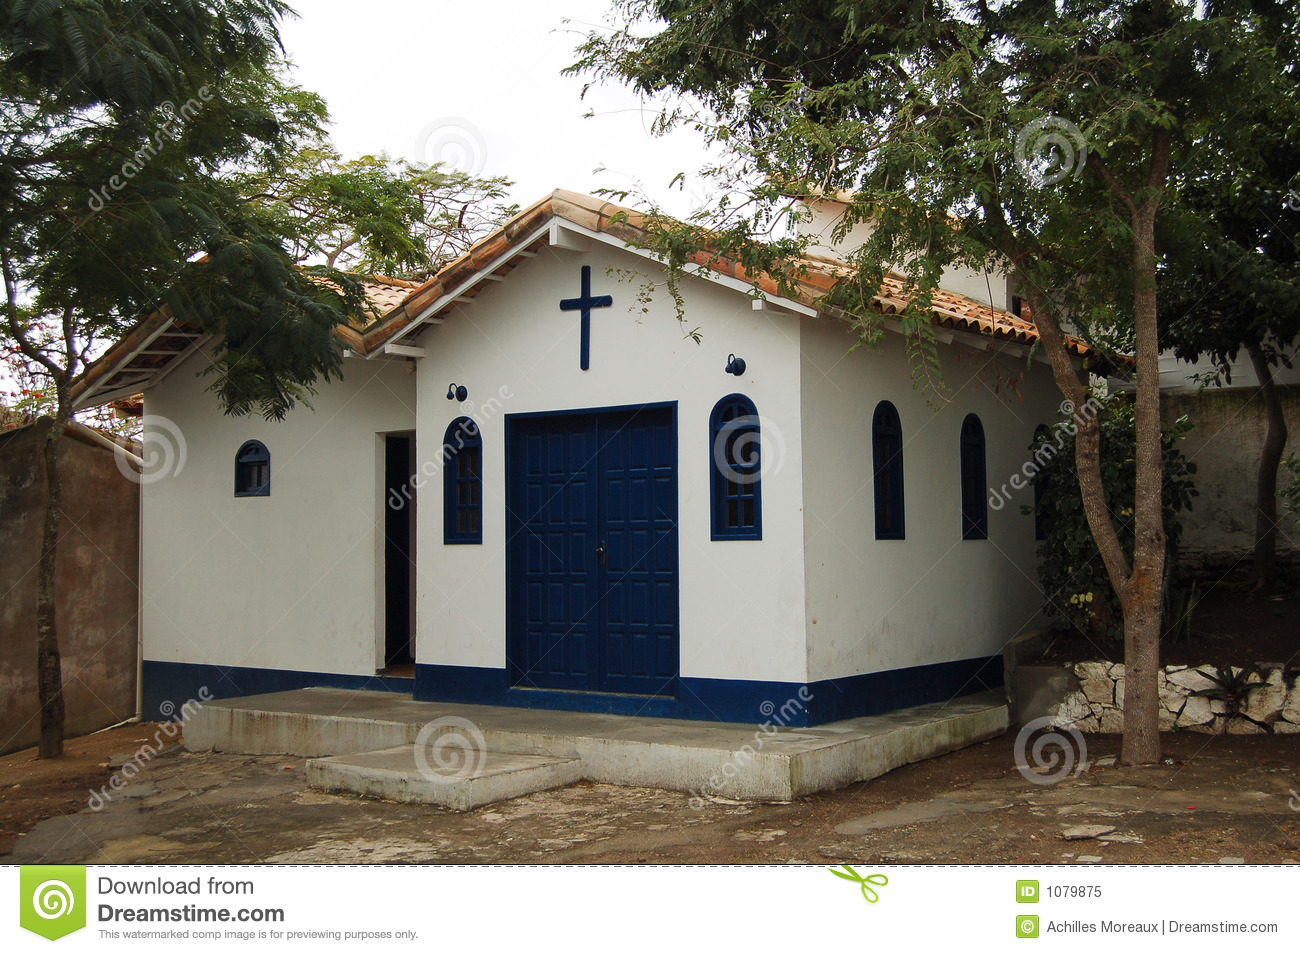 Exterior of small church building with cross above door.